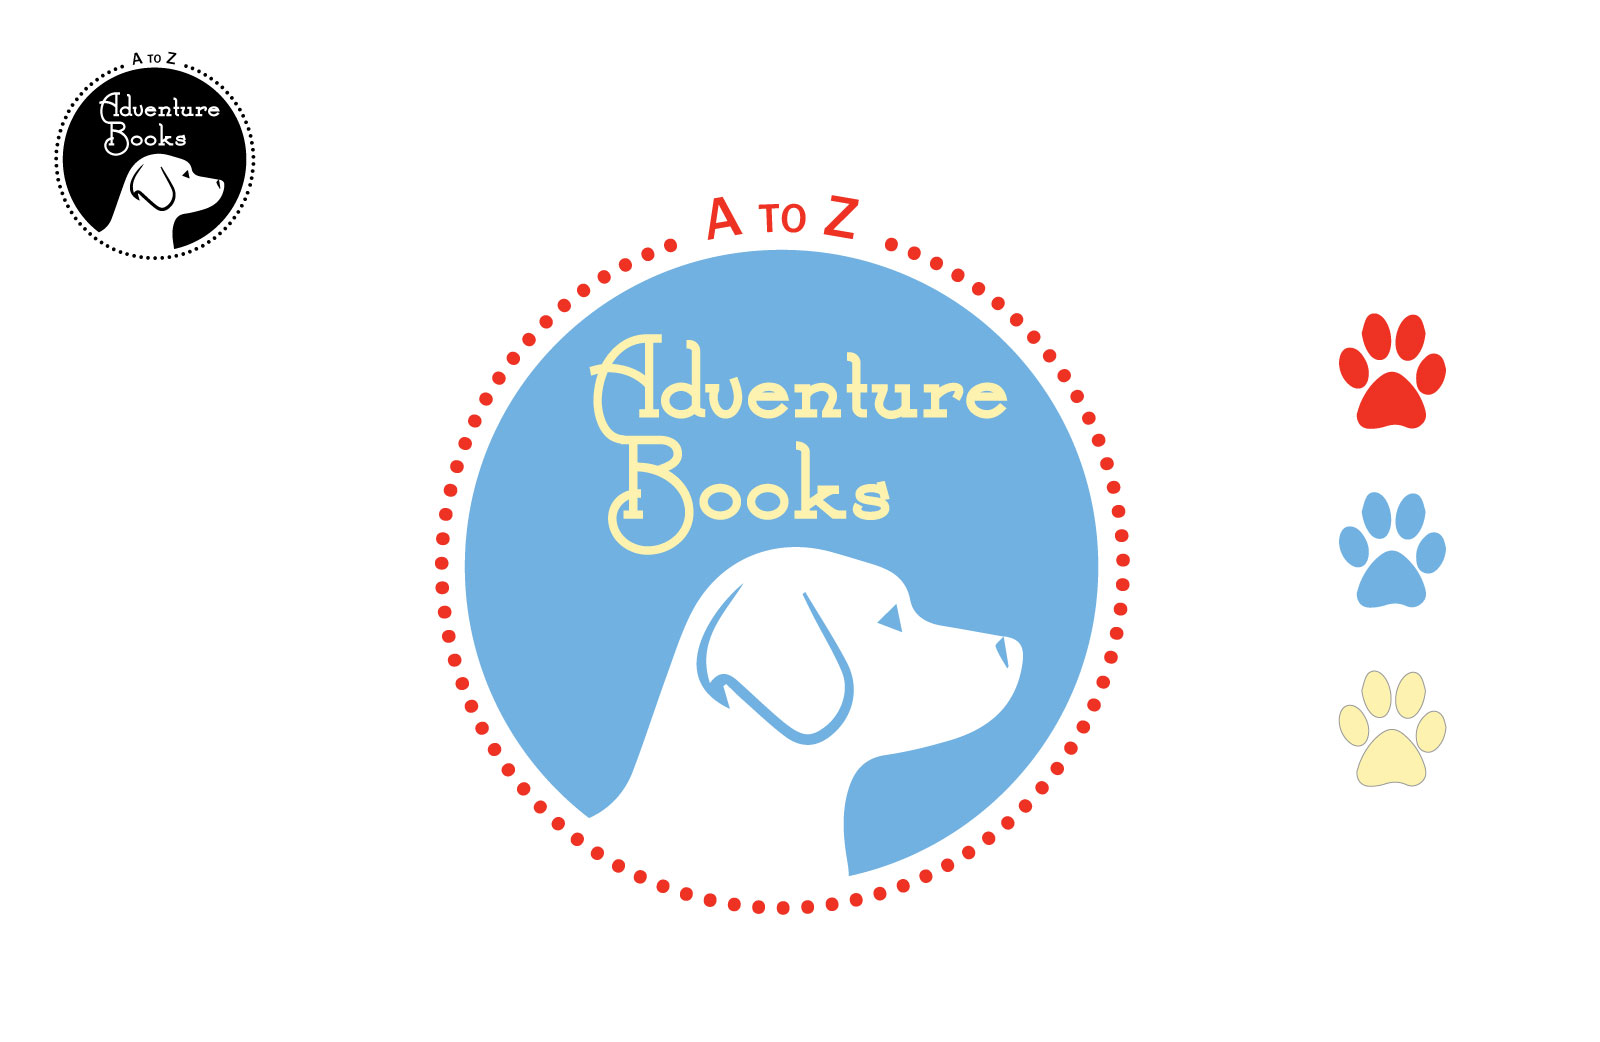 color and black a to z adventure books dog logo